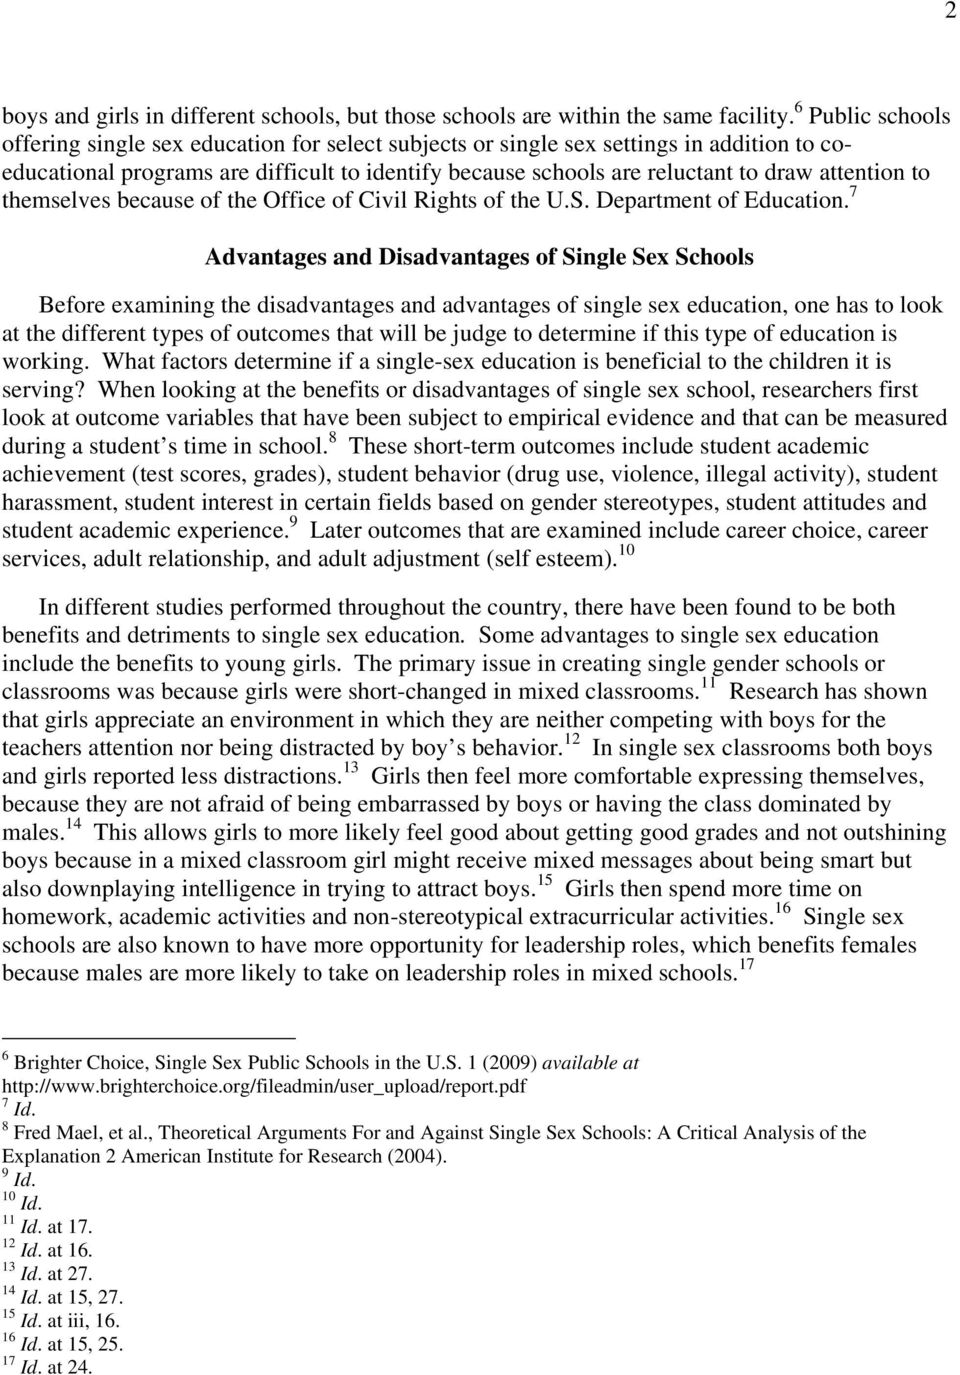 advantages and disadvantages of sex education in schools